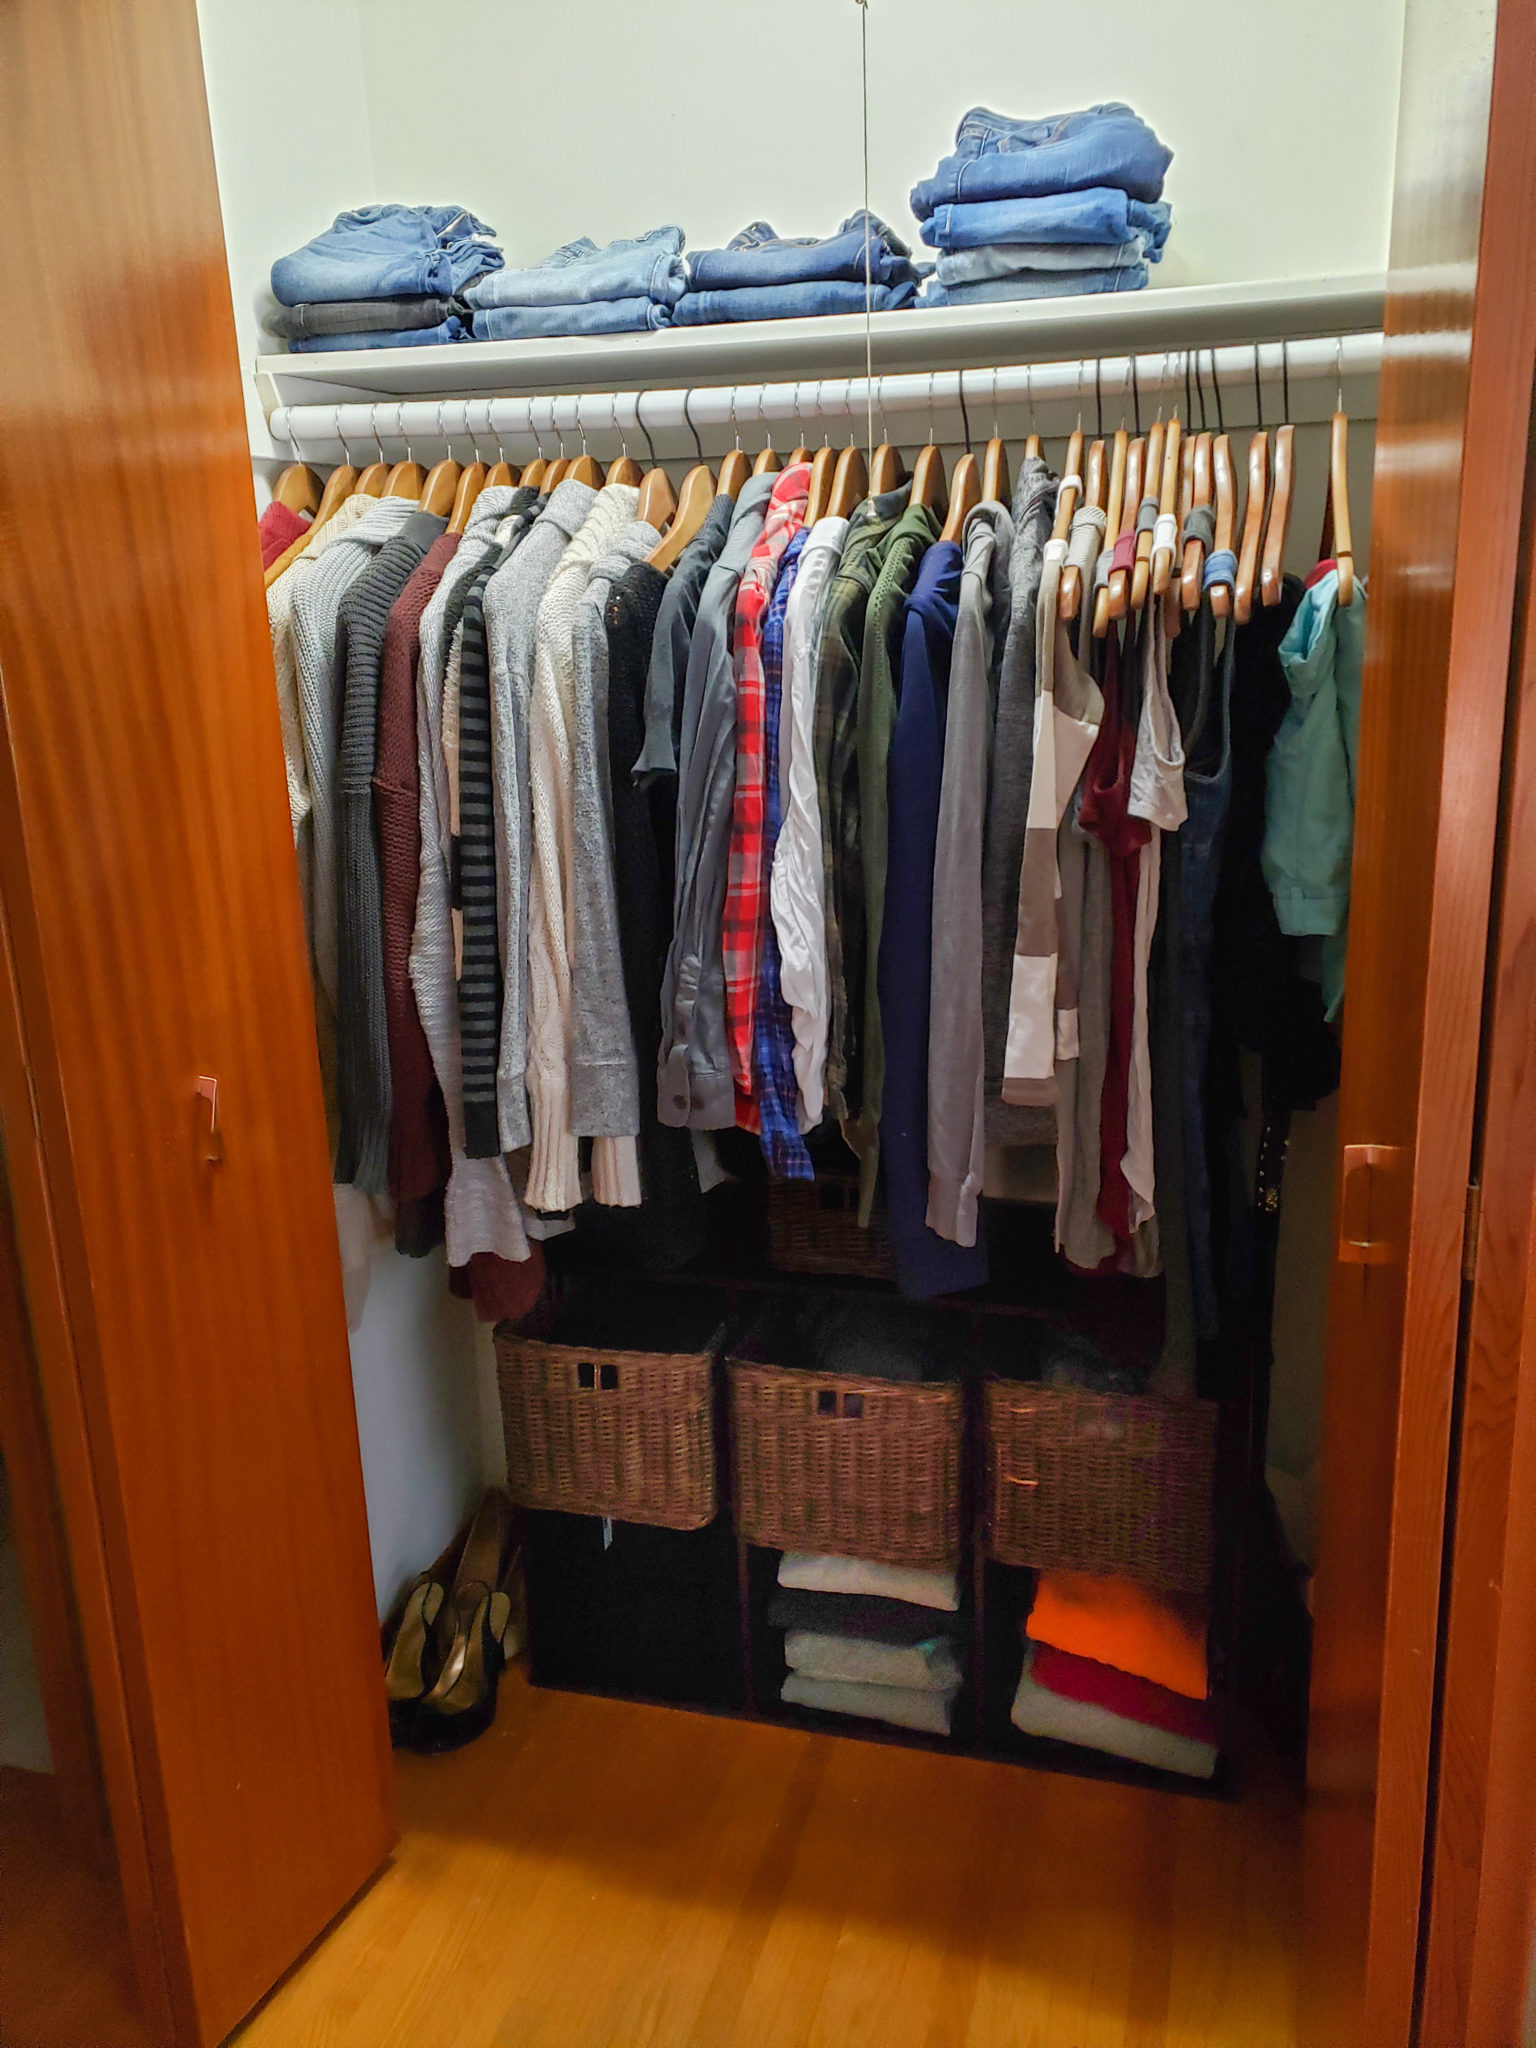 Bedroom closet - After